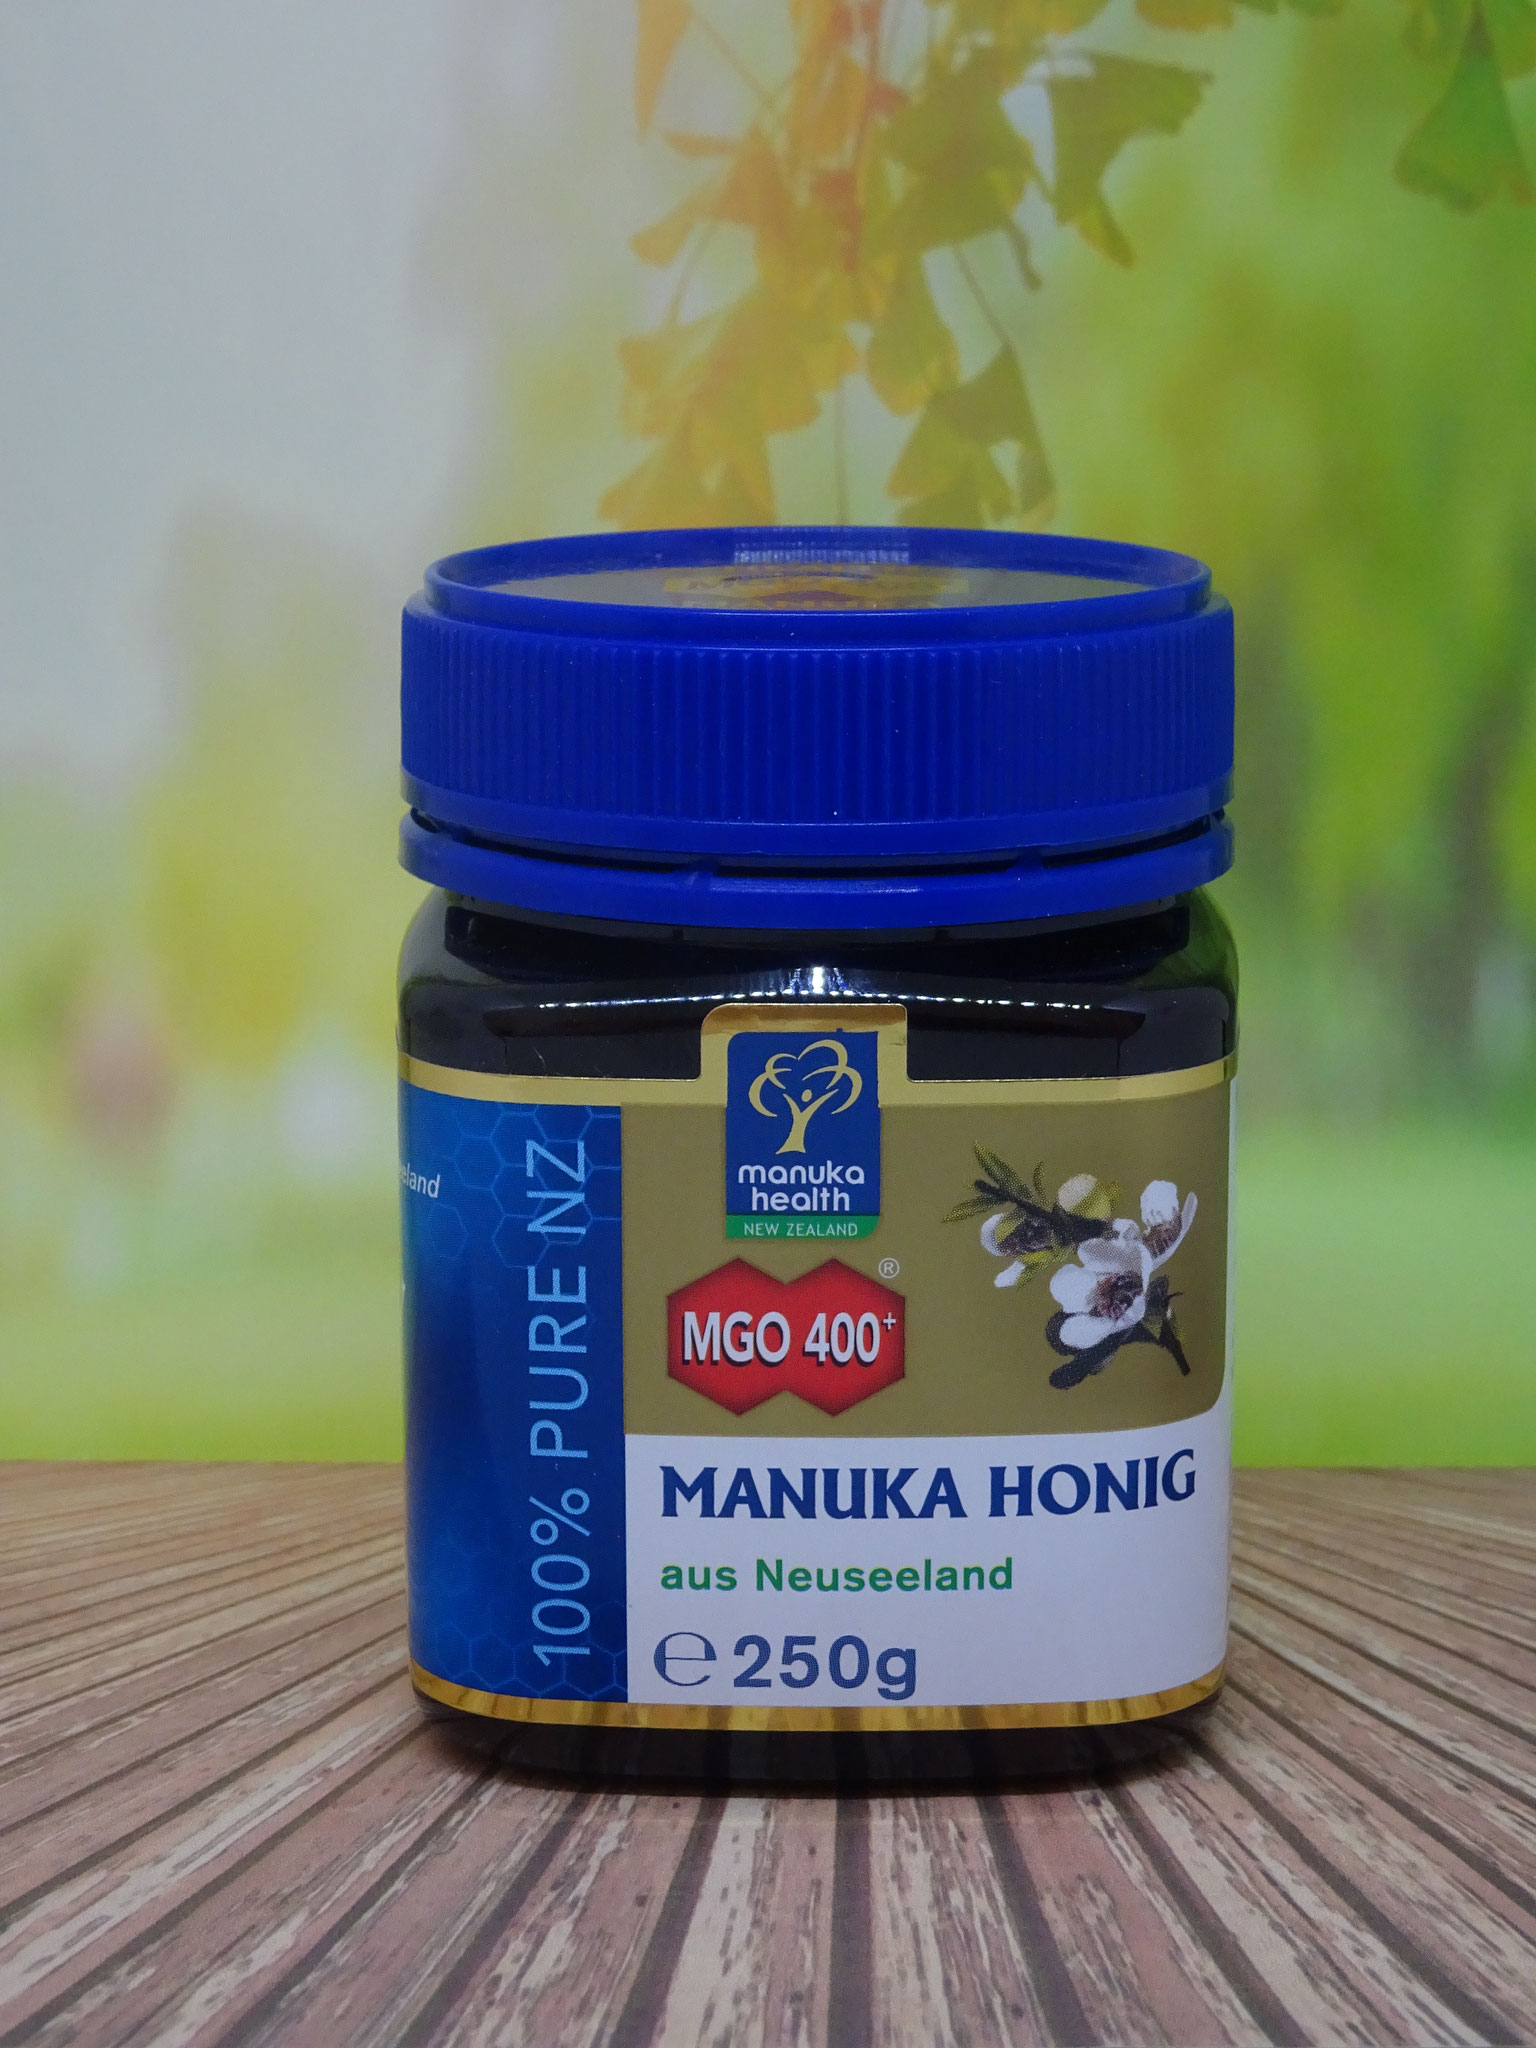 Manuka Honig MGO 400 250g (Manuka Health New Zealand)